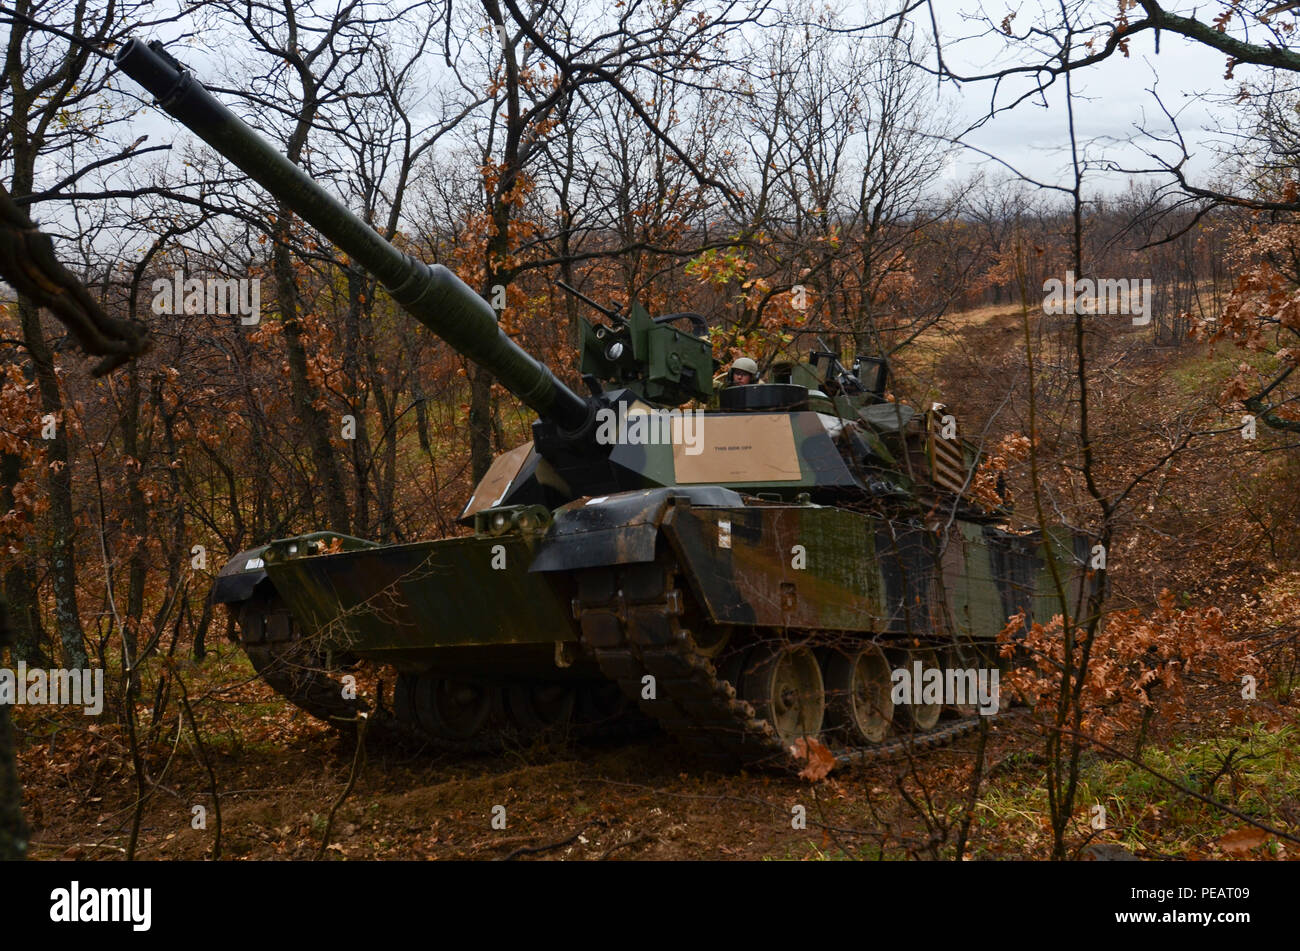 Soldiers of 5th Squadron, 7th Cavalry Regiment, 3rd Infantry Division, stationed at Fort Stewart, Ga., drive an M1A2 System Enhancement Package Version 2 Abrams tank through the mountainside during Exercise Peace Sentinel at Novo Selo Training Center, Bulgaria, Nov. 23, 2015. (Photo by Staff Sgt. Steven M. Colvin/Released) - Stock Image